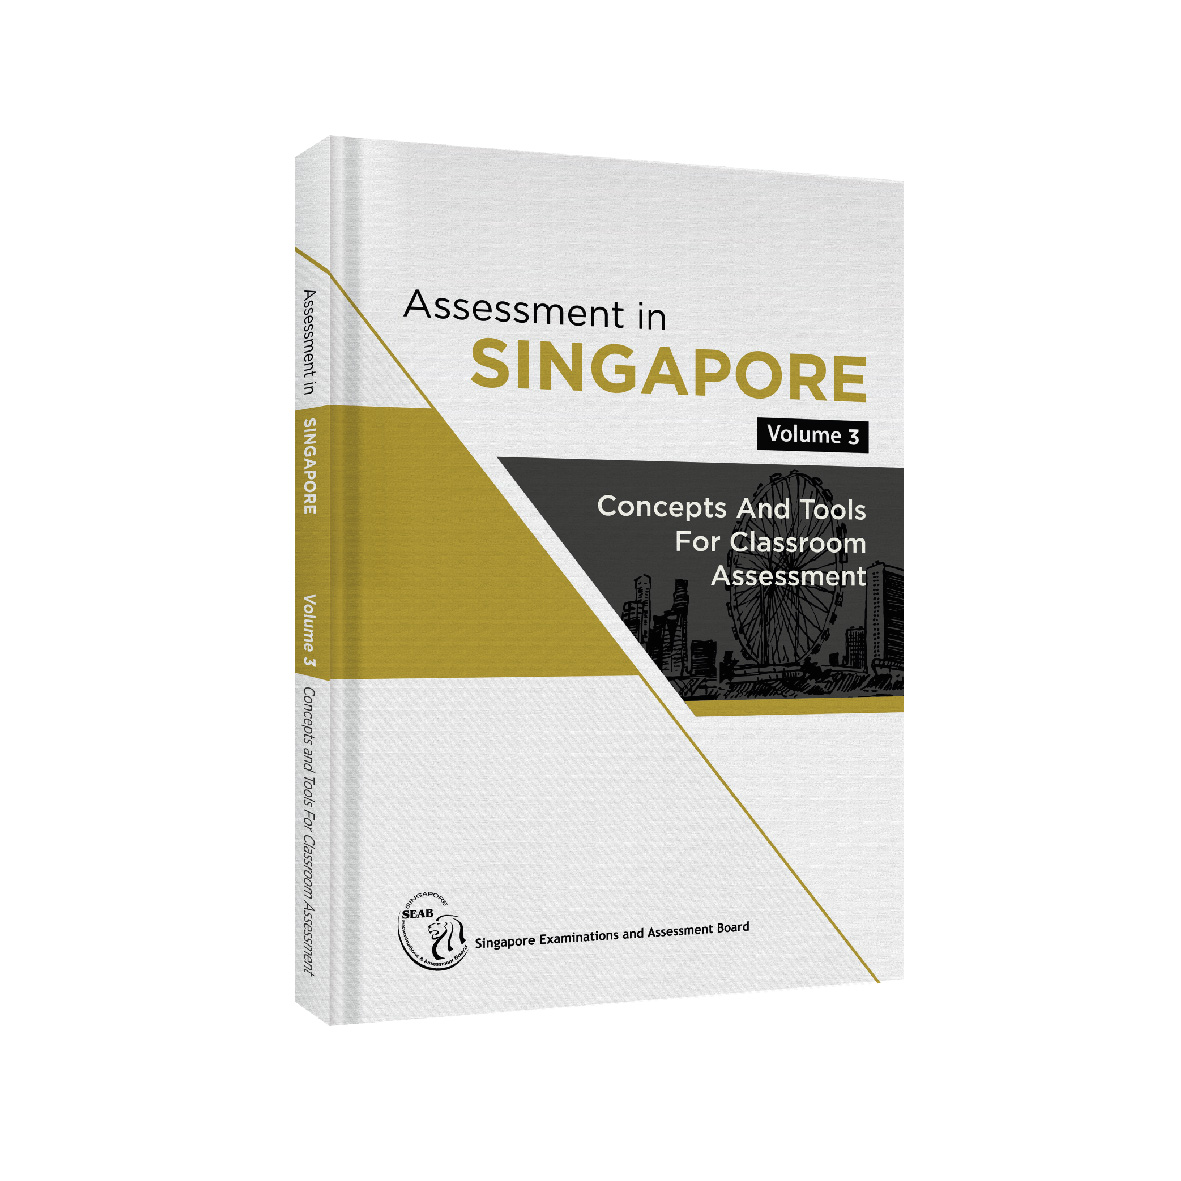 Assessment in Singapore Vol.3